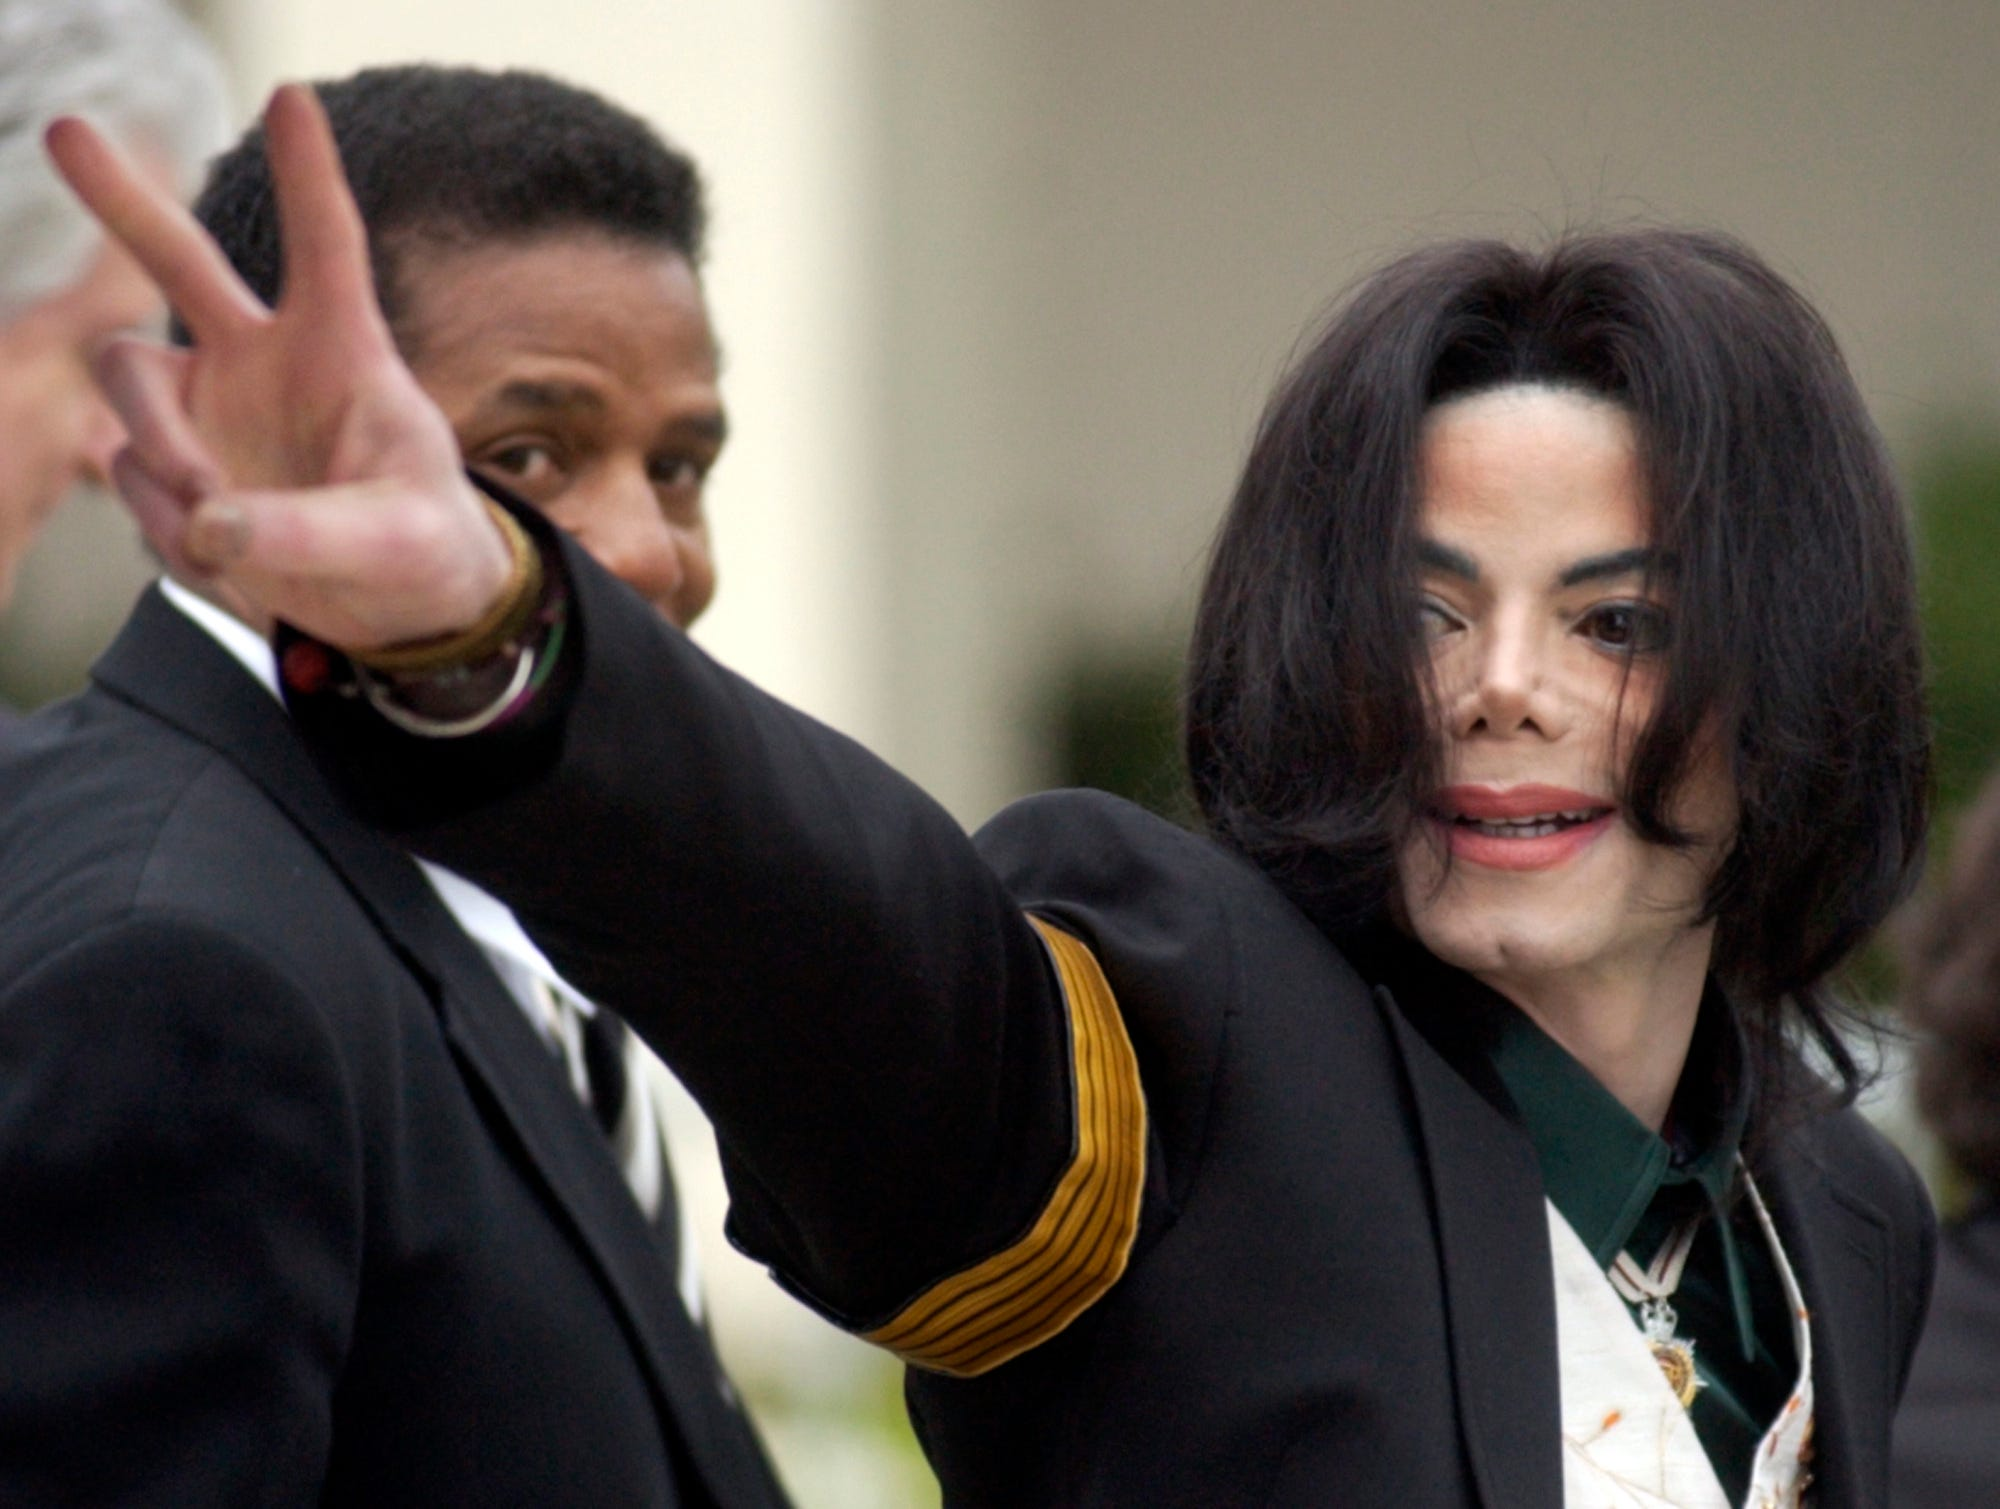 Barbra Streisand is 'profoundly sorry' for controversial remarks on Michael Jackson accusers